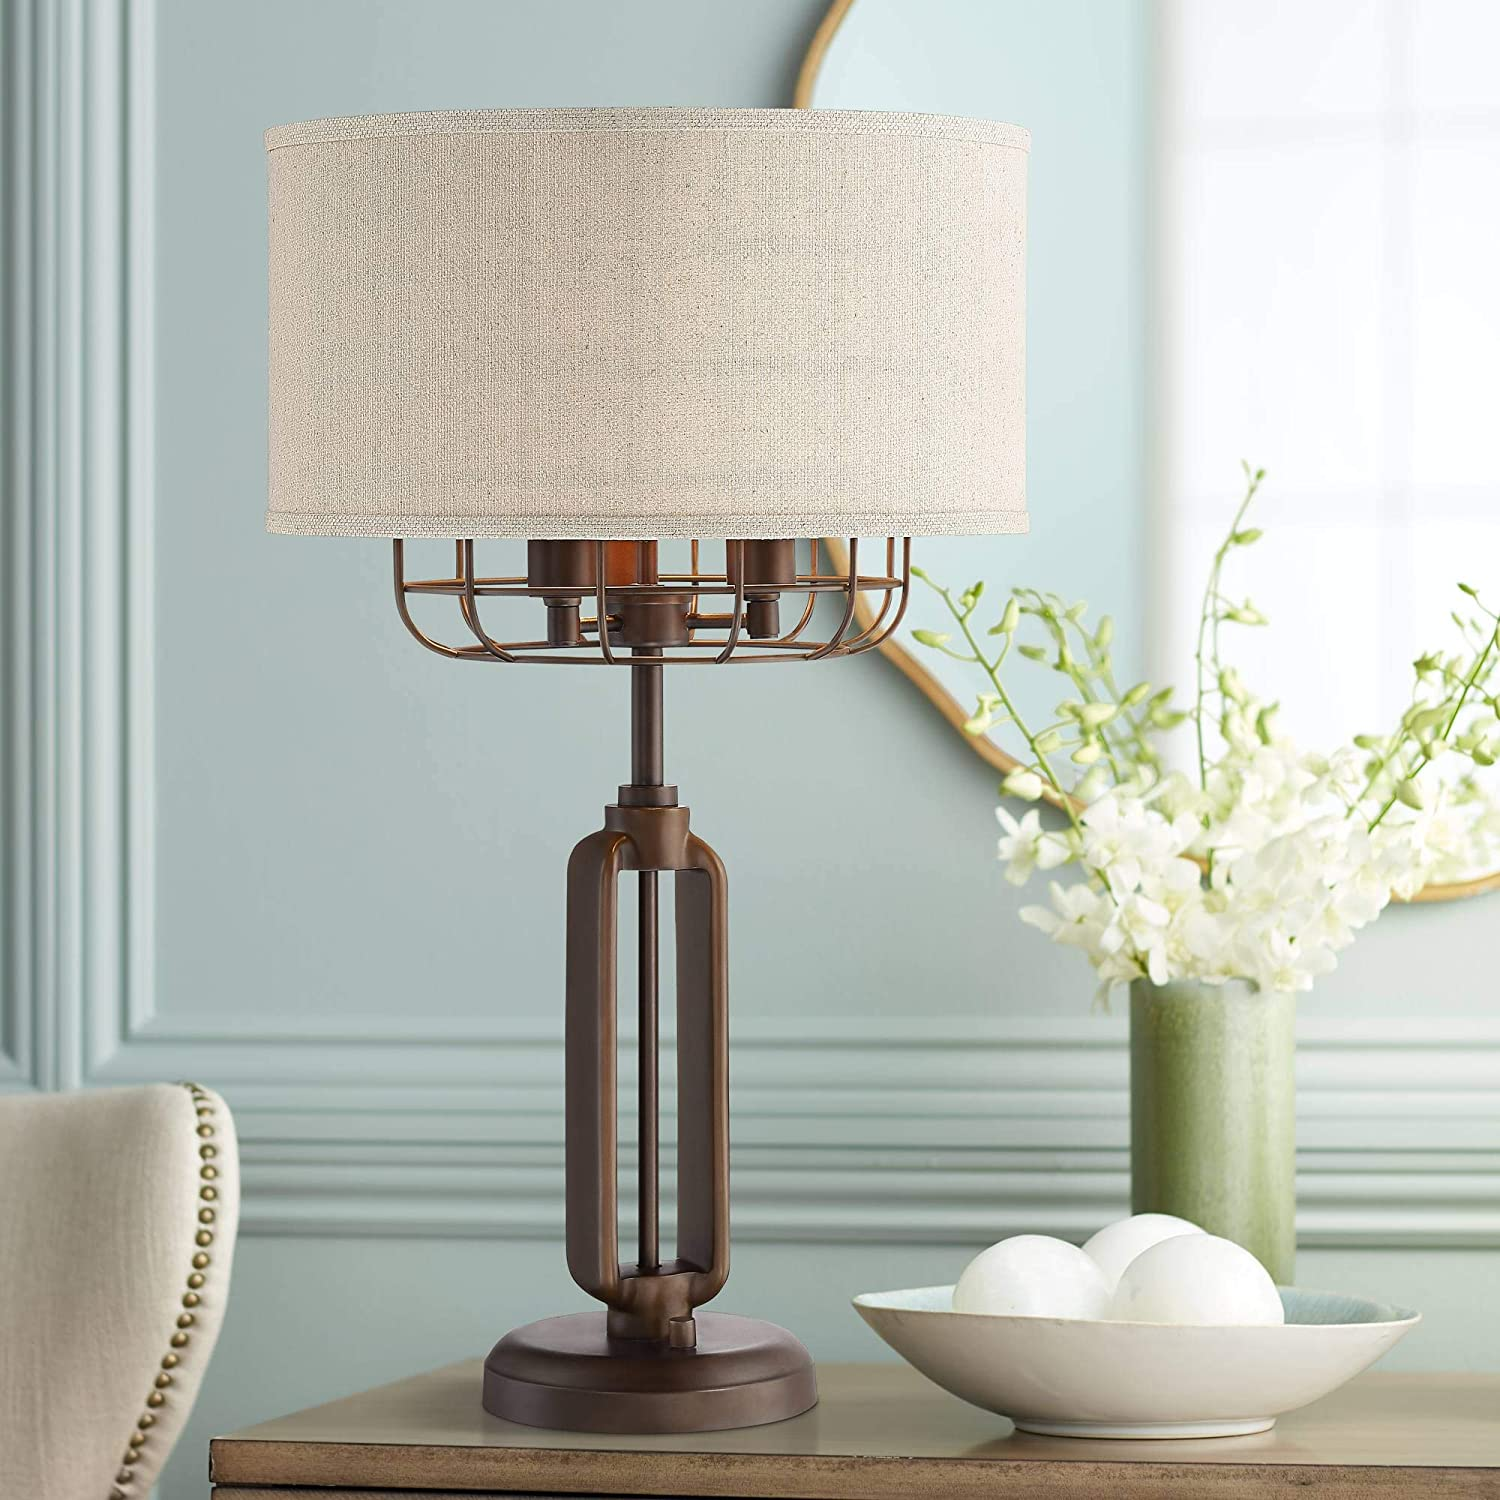 Ranking TOP20 Tremont Modern Rustic Farmhouse Table Cag Bronze New Orleans Mall Iron Lamp Brown